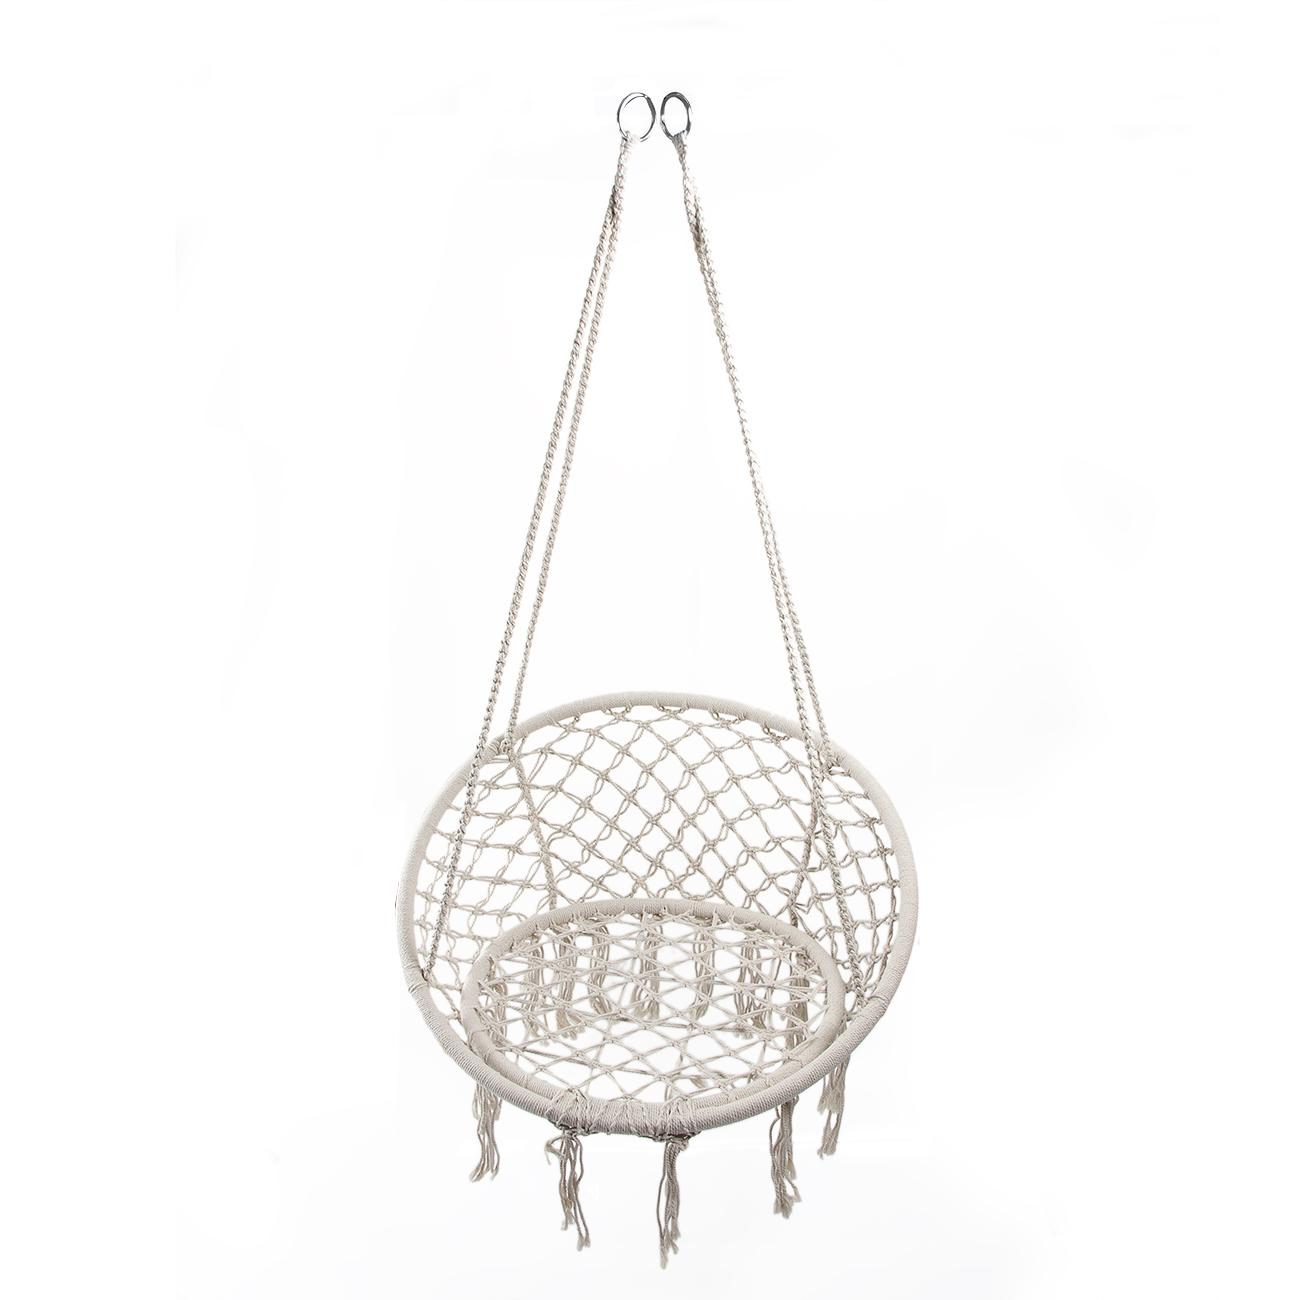 80x120cm Round Hammock Safety Hanging Chair Swing Rope Outdoor Indoor Garden Seat For Child Adult Dormitory Bedroom